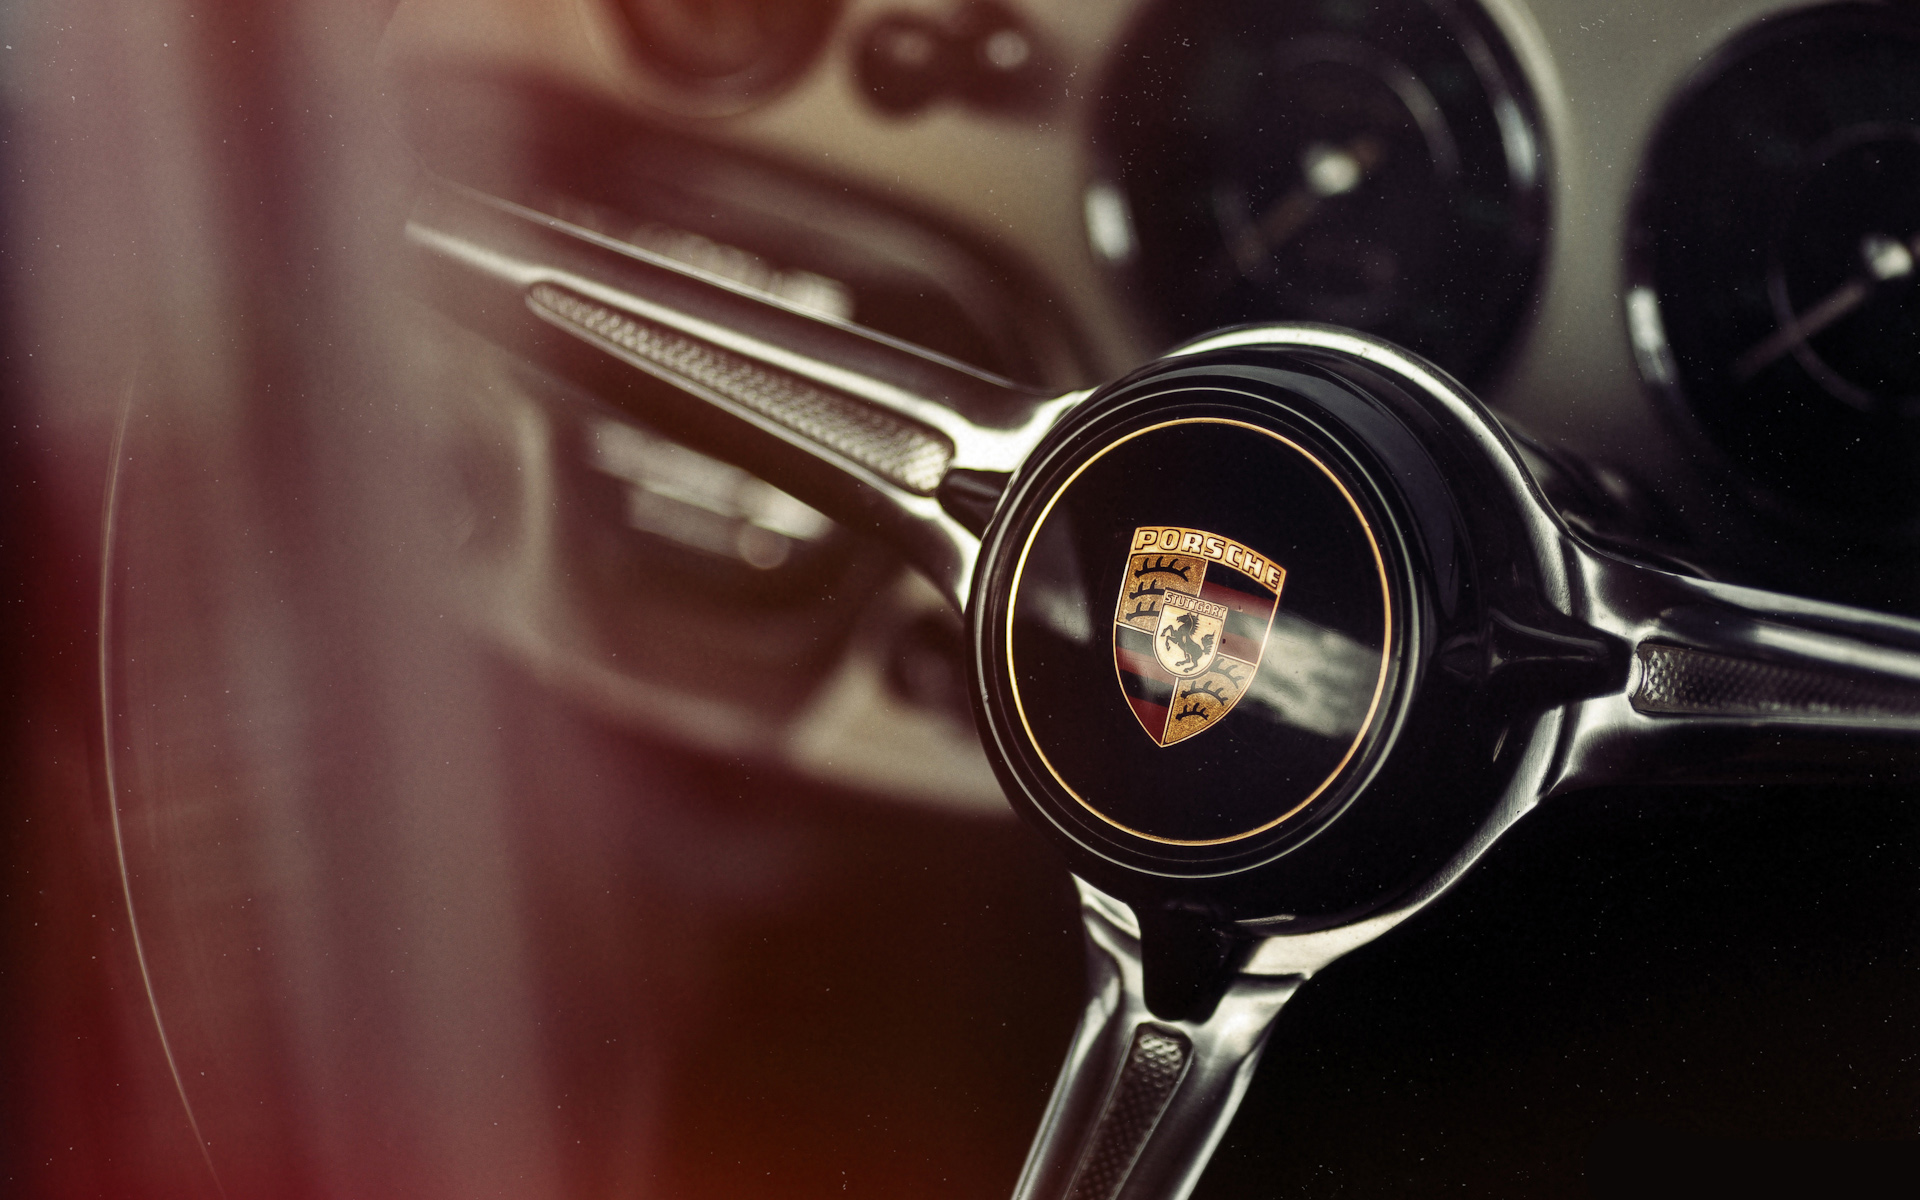 Porsche Steering Wheel Wallpaper Hd Car Wallpapers Id 3091